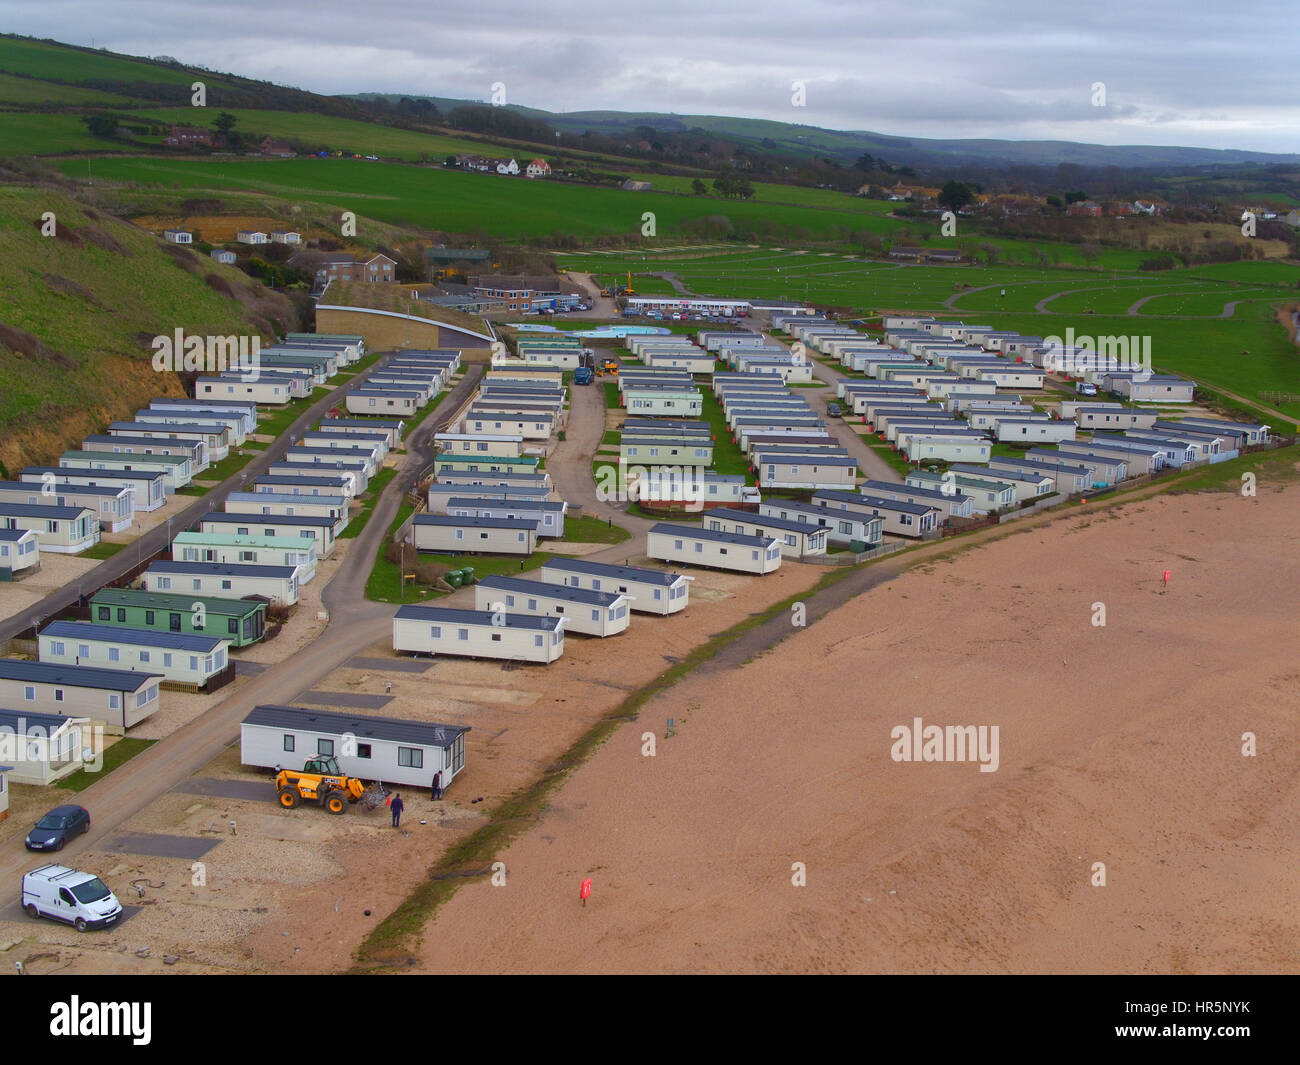 An Aerial View Of Caravans At The Freshwater Beach Holiday Park Near West Bay Dorset